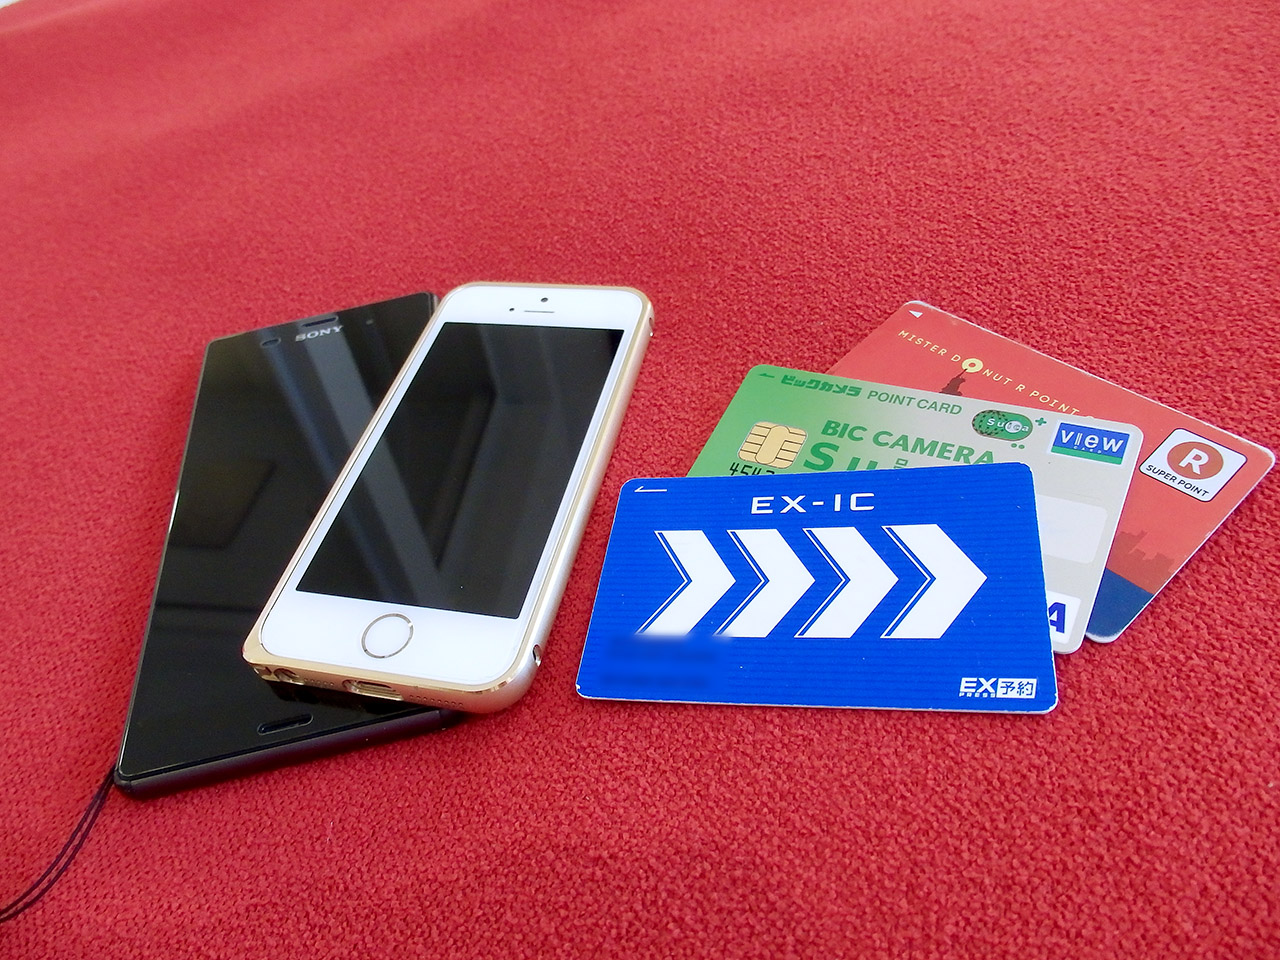 iPhone,Xperia,EX-IC,Suica,R-Point